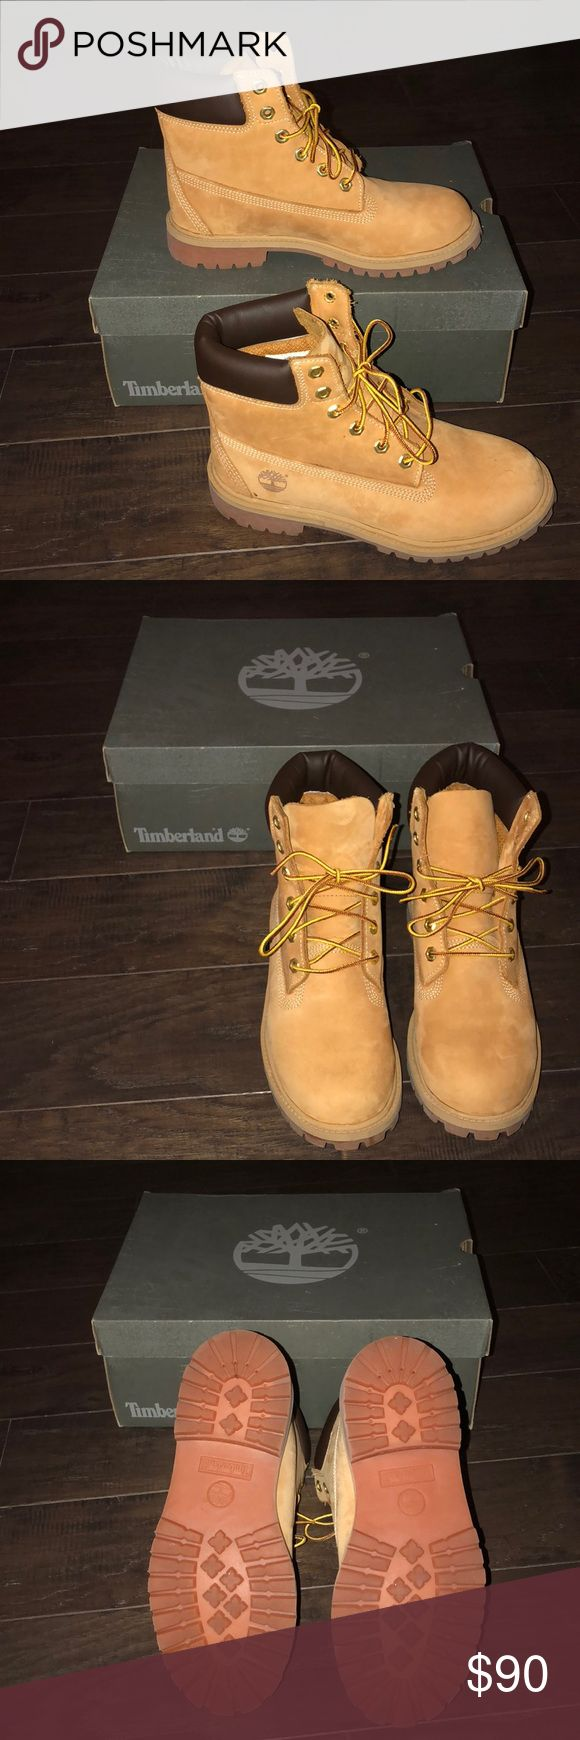 NEW Timberland boots Size 6. NEW Timberland boots Size 6. These are juniors size 6 so they fit Women's 7 or 7.5. Cross posted, priced to sell! Timberland Shoes Winter & Rain Boots